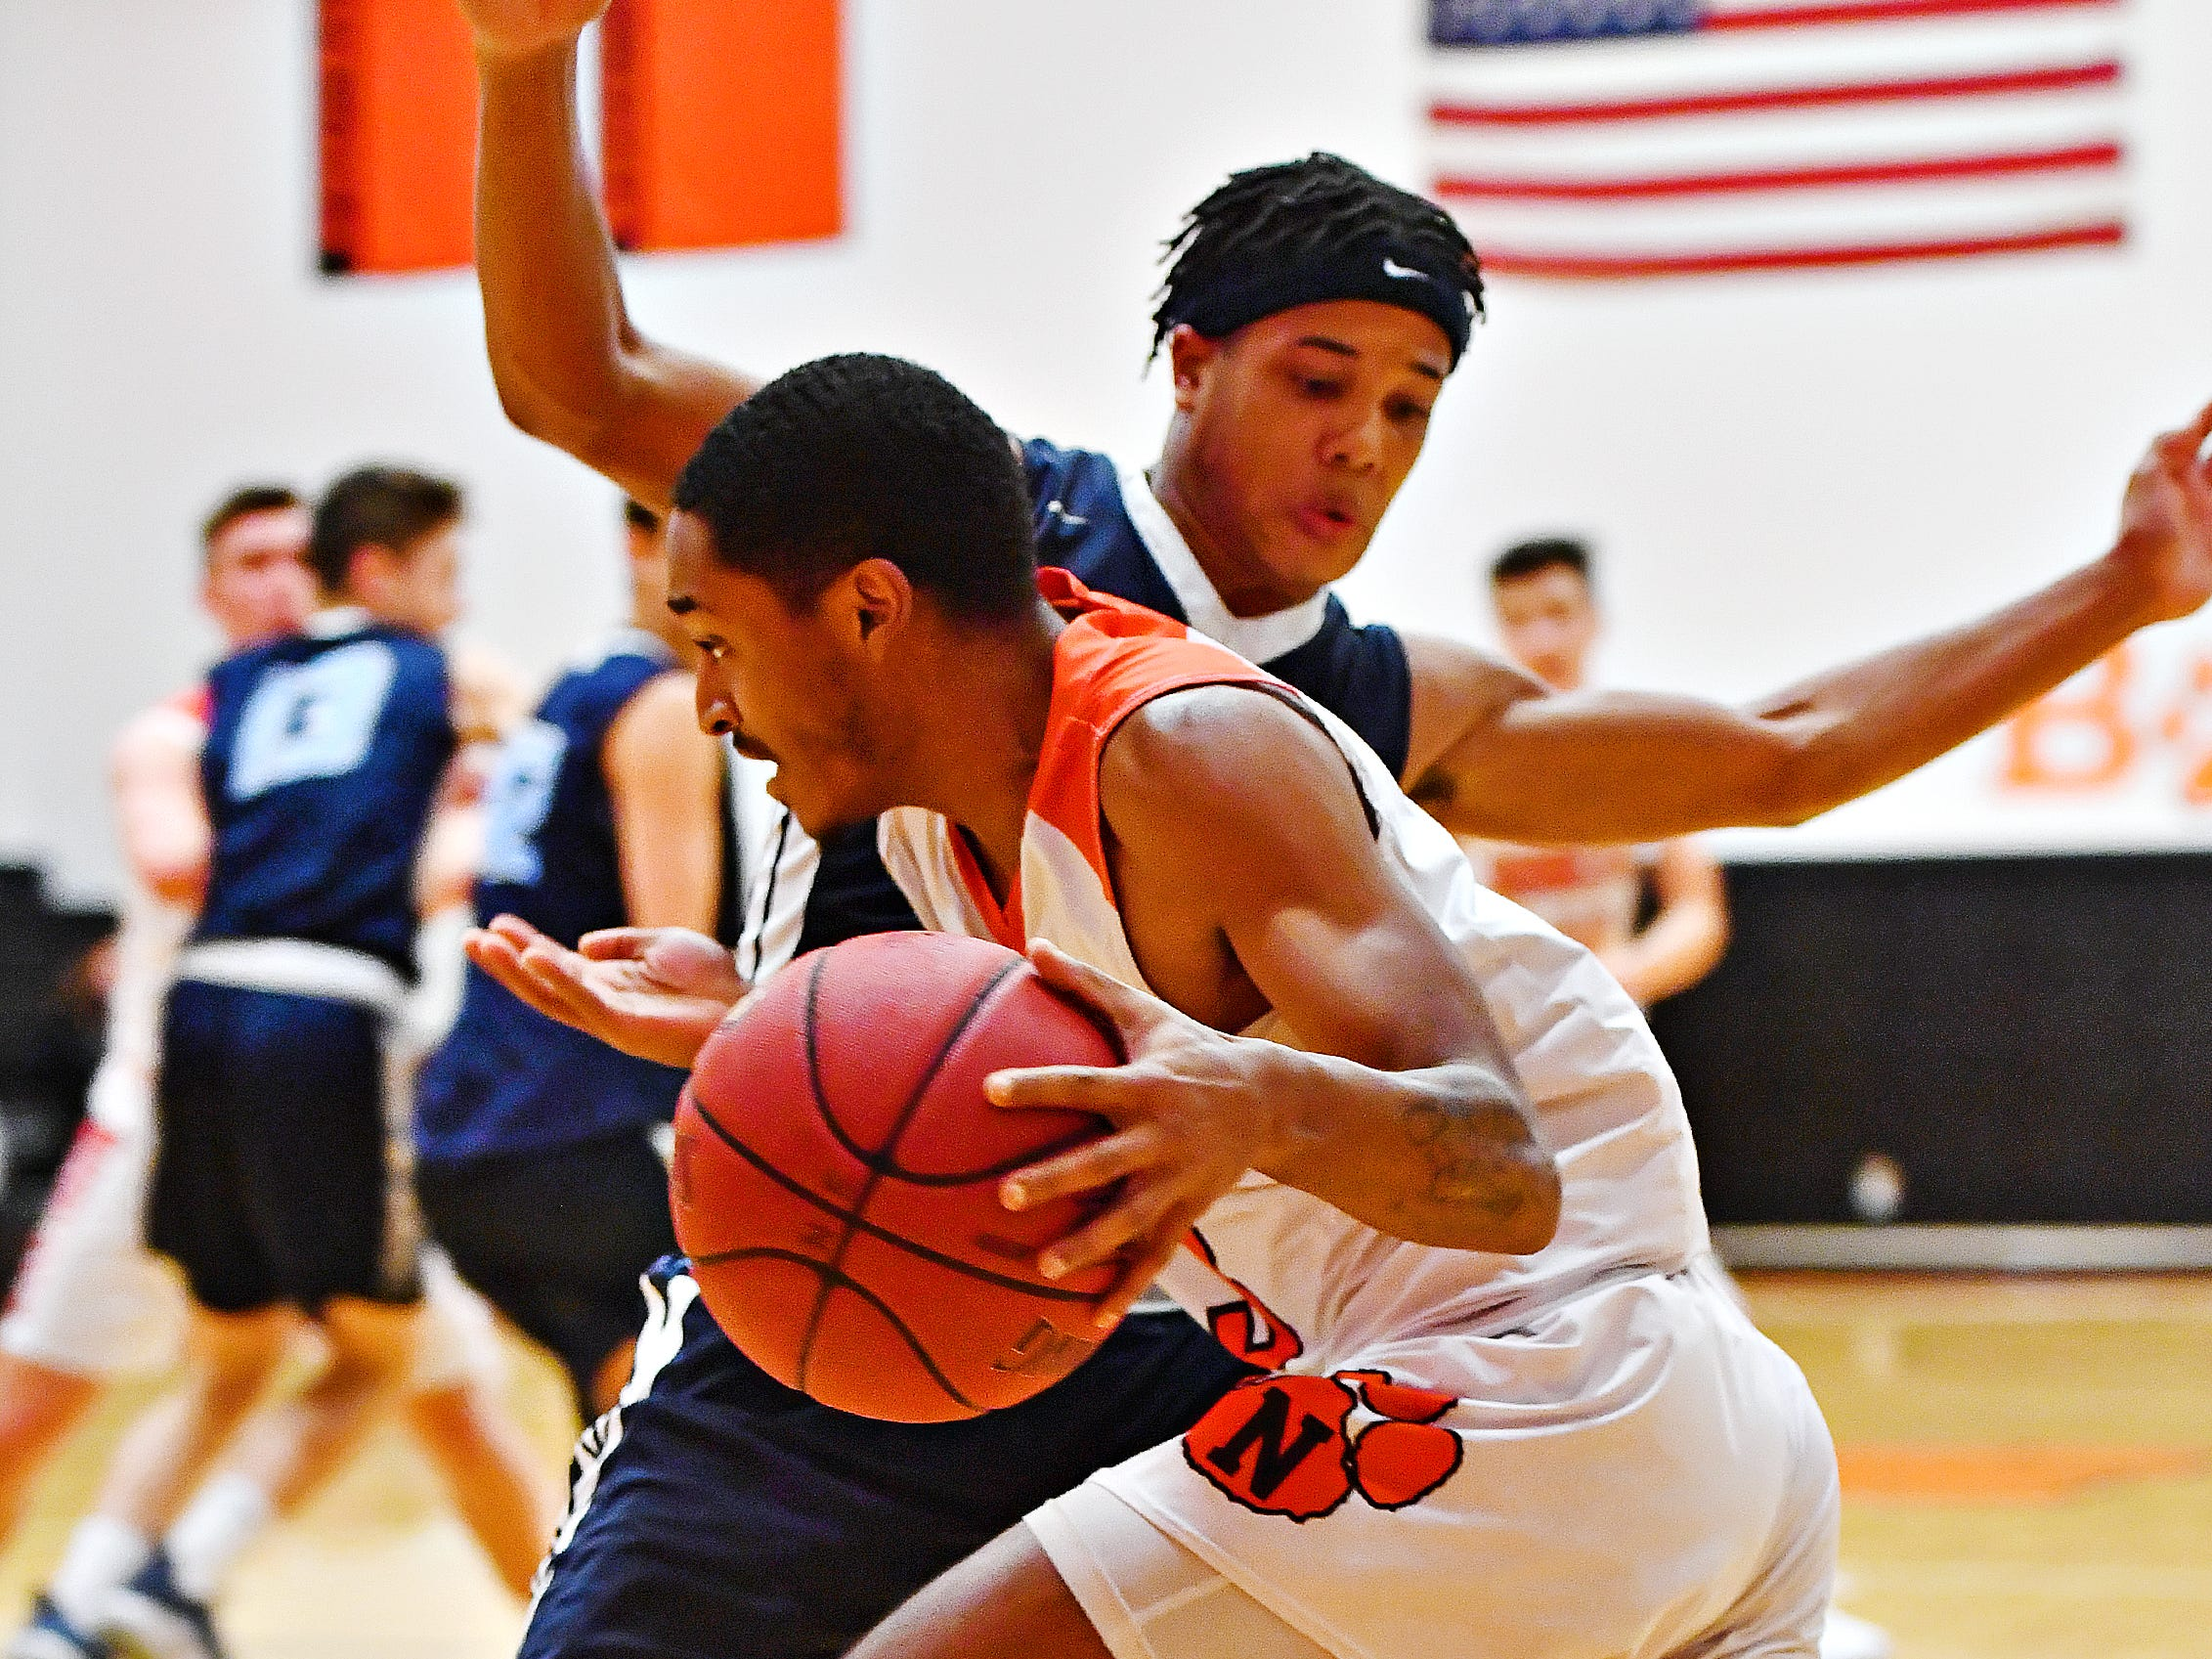 Northeastern's Devyn Baltimore, front, looks to get past Manheim Township's Kyle Musser during basketball action at Northeastern Senior High School in Manchester, Wednesday, Jan. 9, 2019. Northeastern would win the game 47-46. Dawn J. Sagert photo